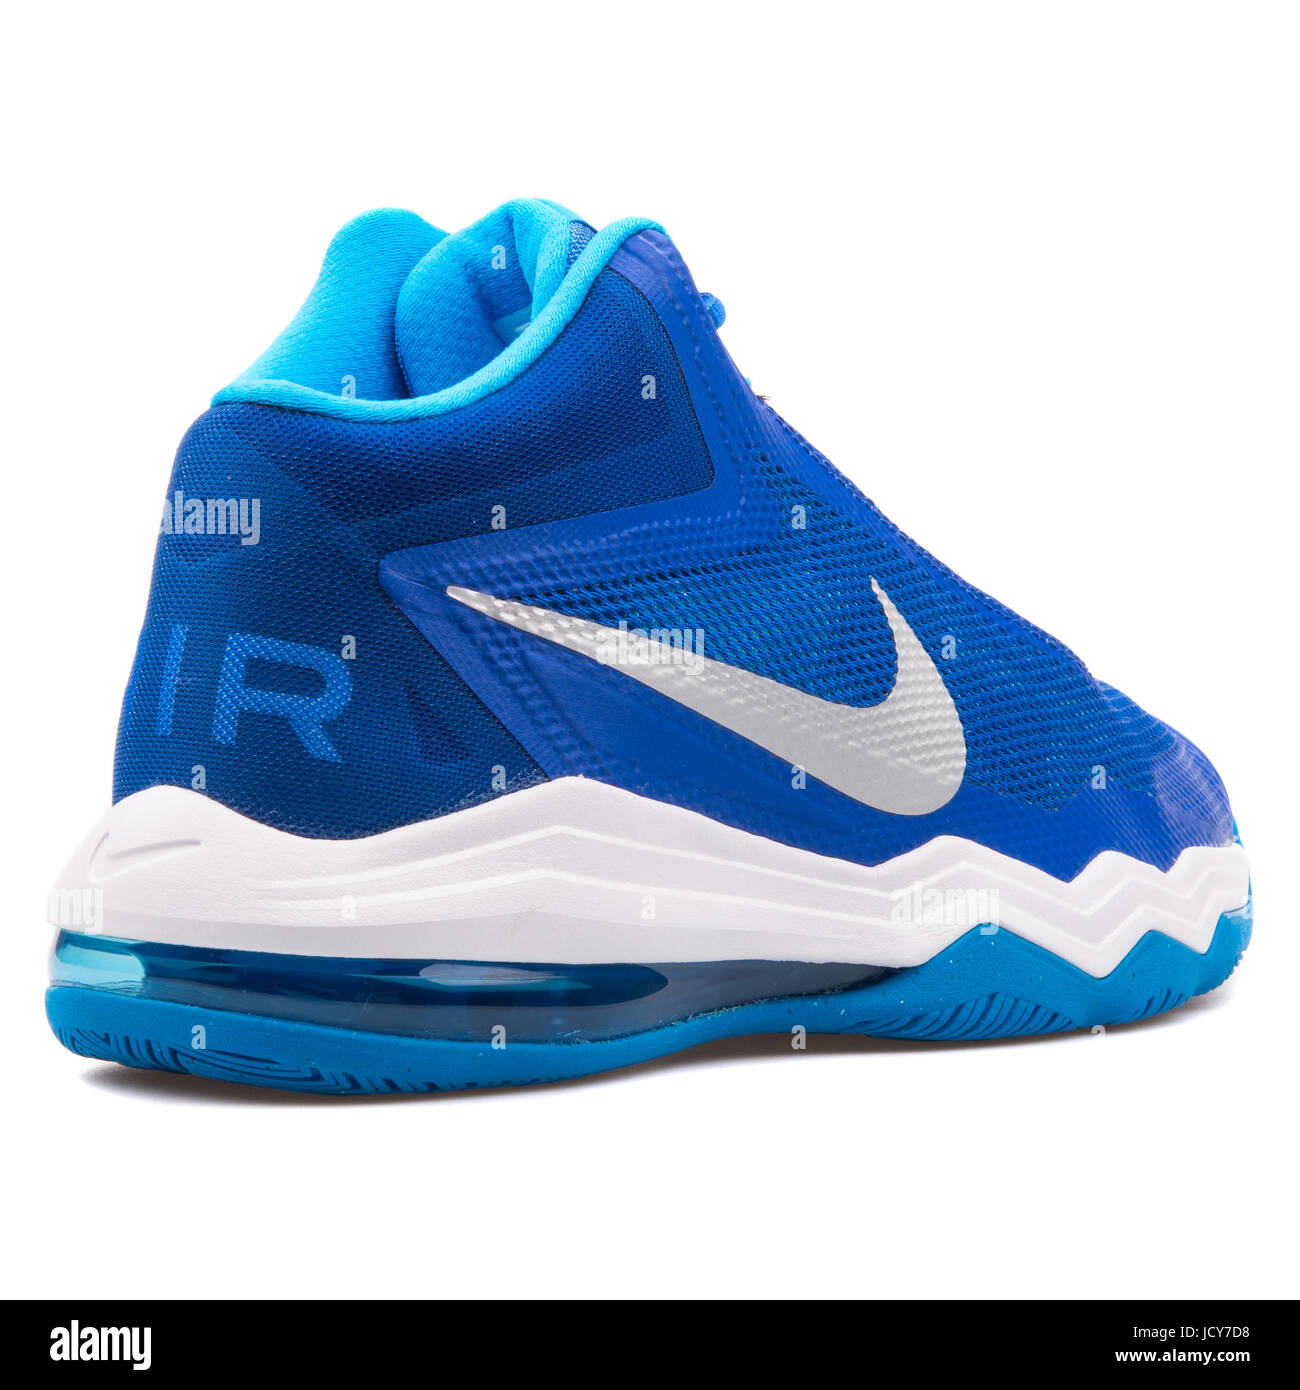 Nike Air Max Audacity Tb Blue And White Unisex Basketball Shoes